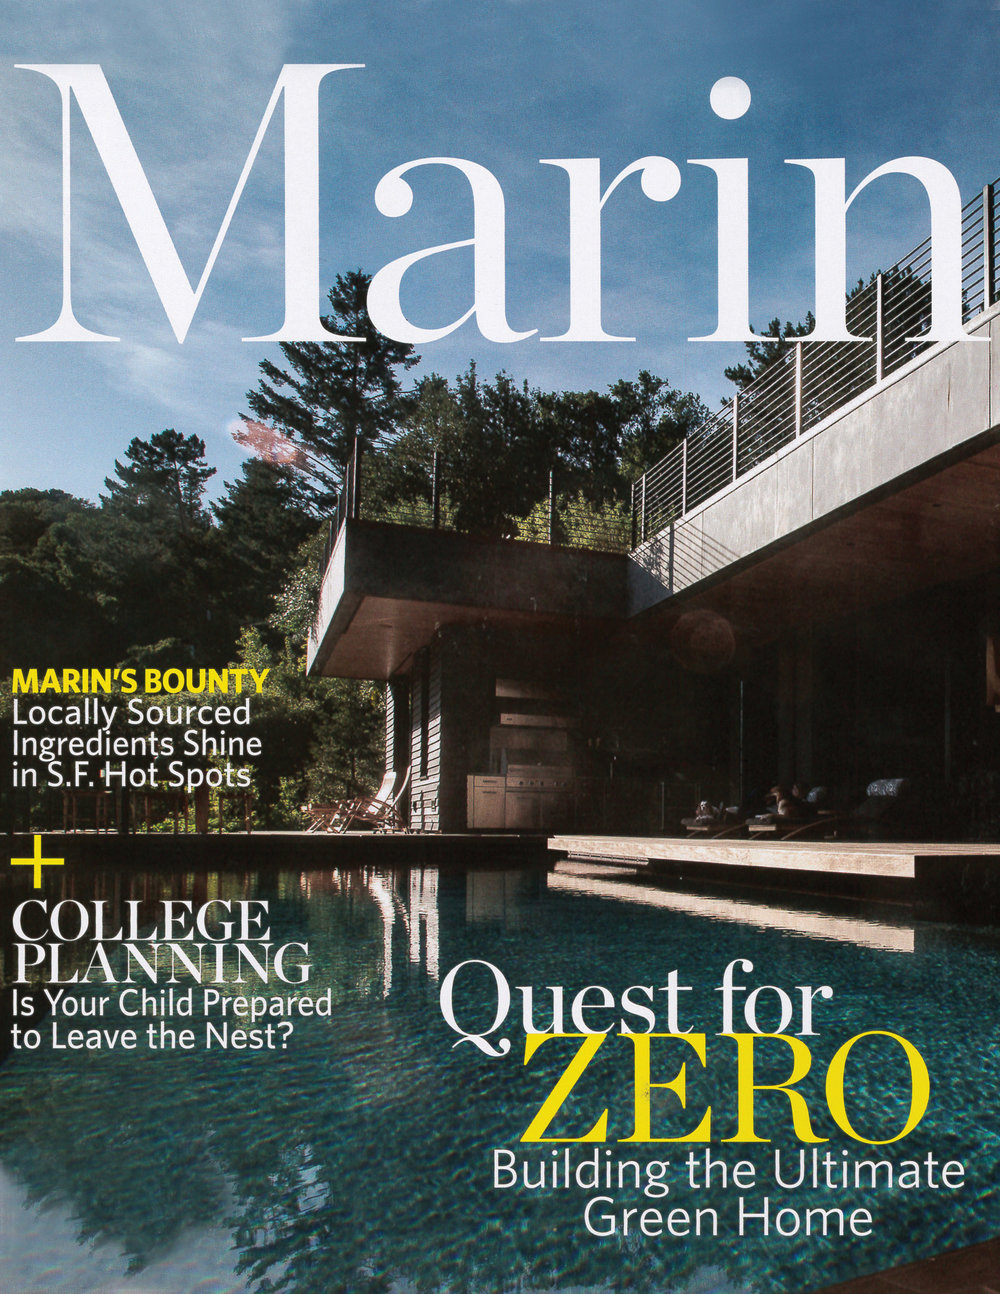 The Quest for Zero is featured on the cover or Marin Magazine.